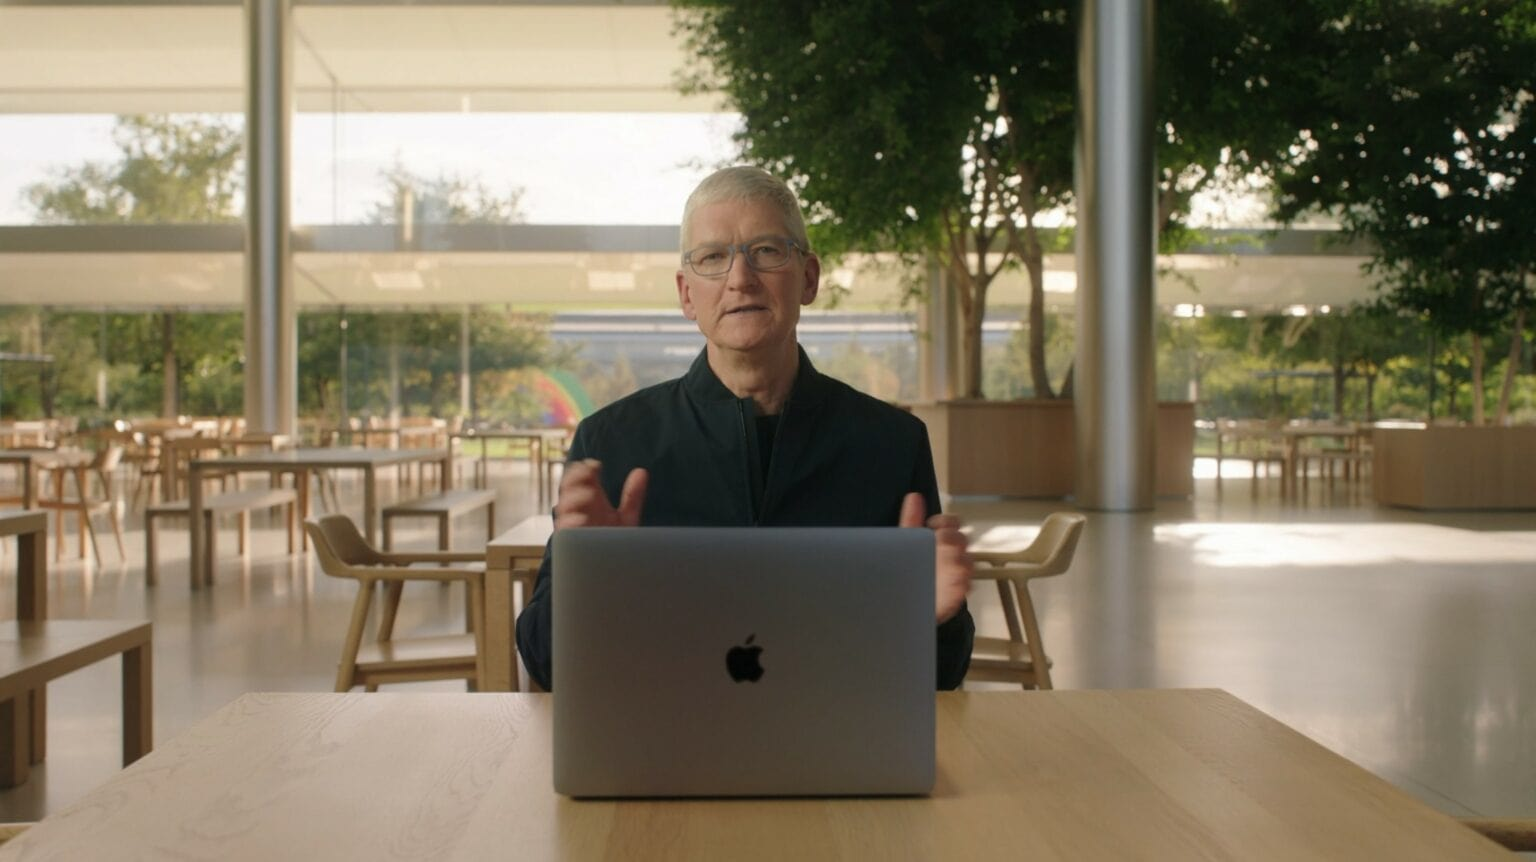 Apple continues to soar under Tim Cook's assured leadership.